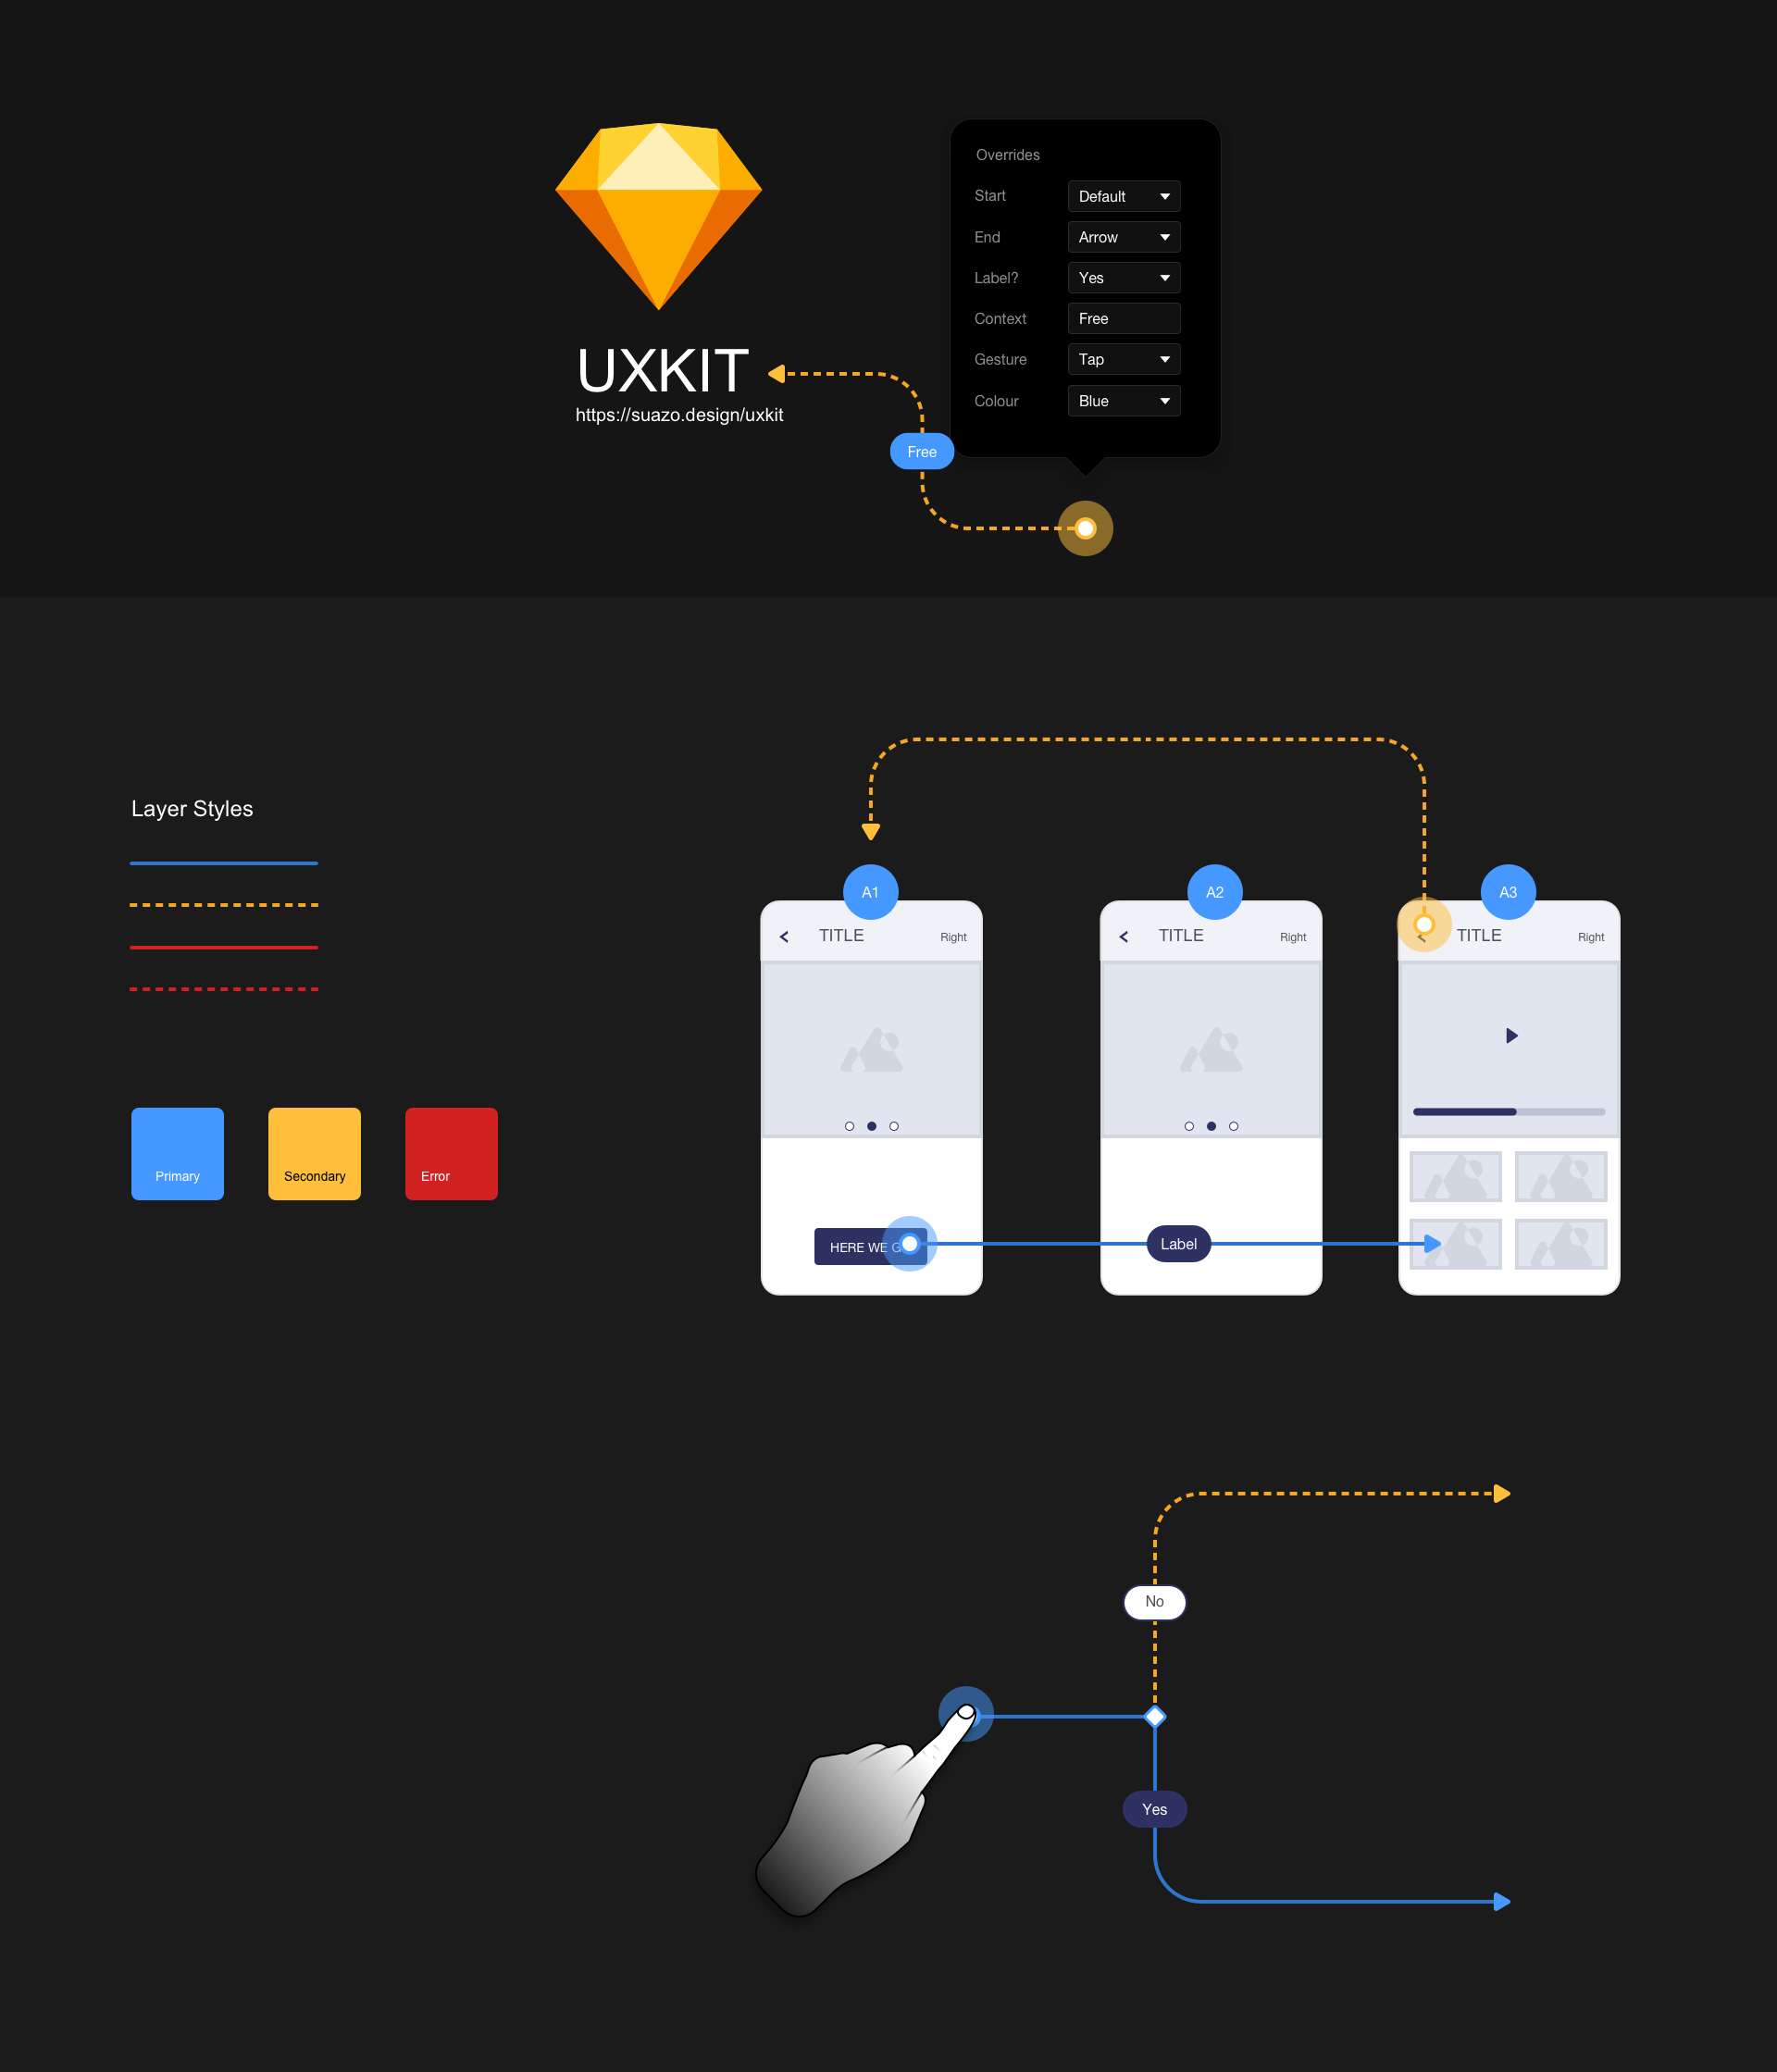 UXKIT - Flowkit for Sketch - Having to Draw, lines, arrows and boxes for every design task become tiresome, so I decided to make time and utilise some of Sketch handy features - libraries, symbols, and overrides.